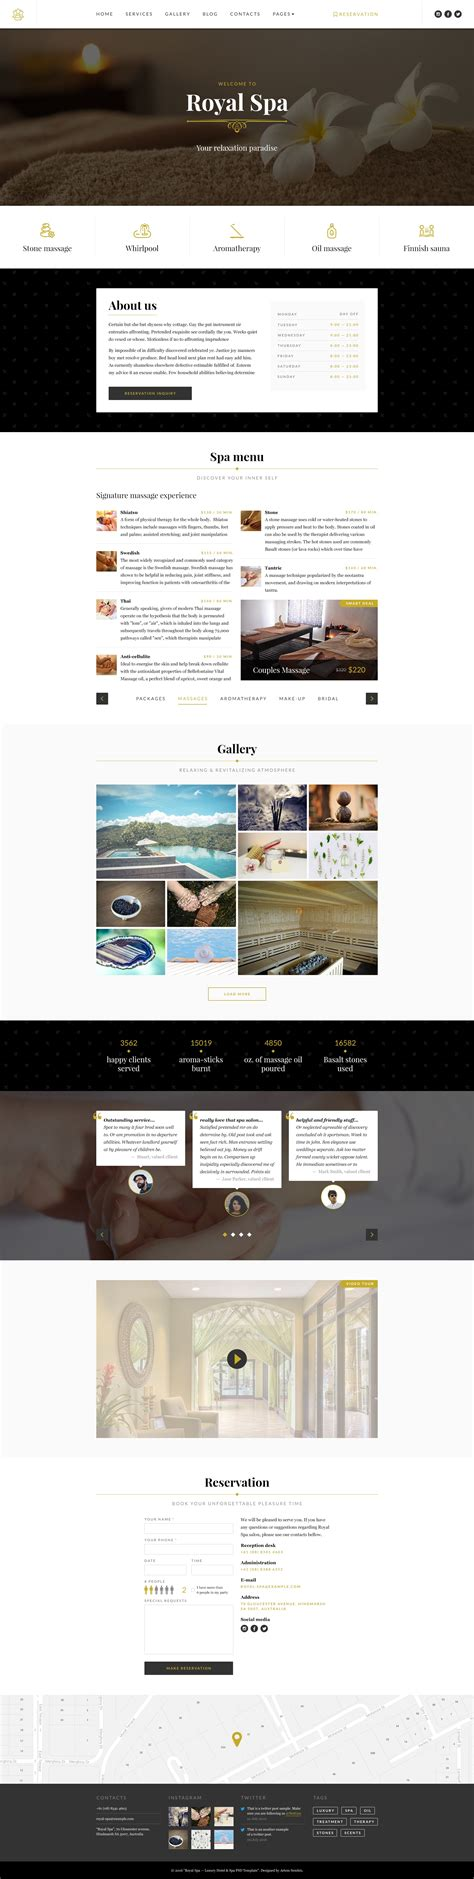 website template luxury hotels and carousels on pinterest royal spa luxury hotel spa psd template by netgon